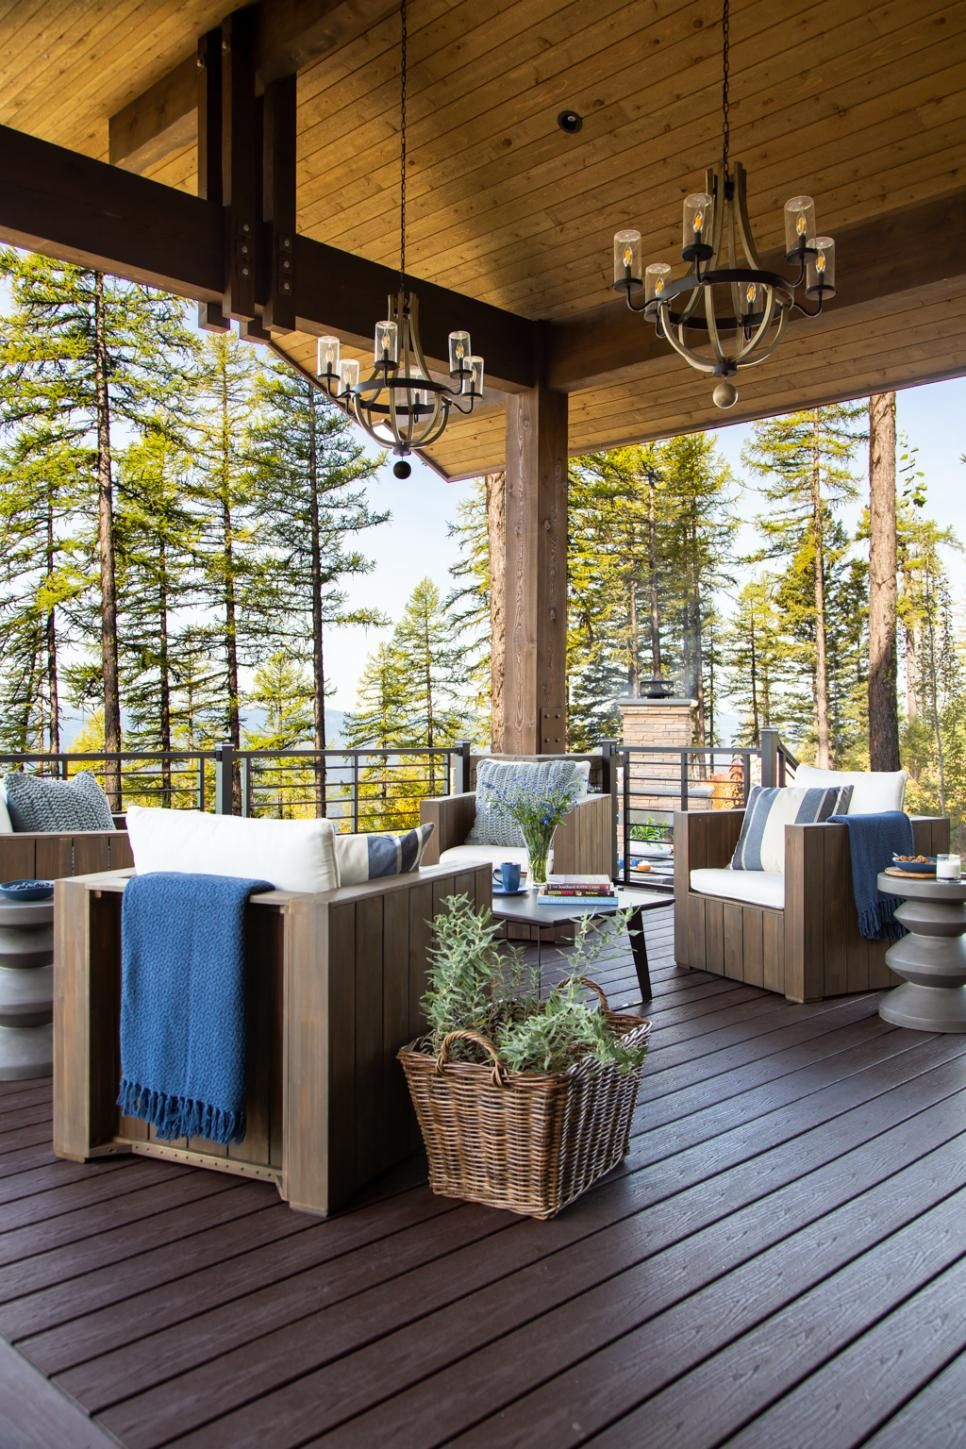 Modern Mountain Holidays At Hgtv Dream Home 2019: HGTV Dream Home 2019: Deck Pictures